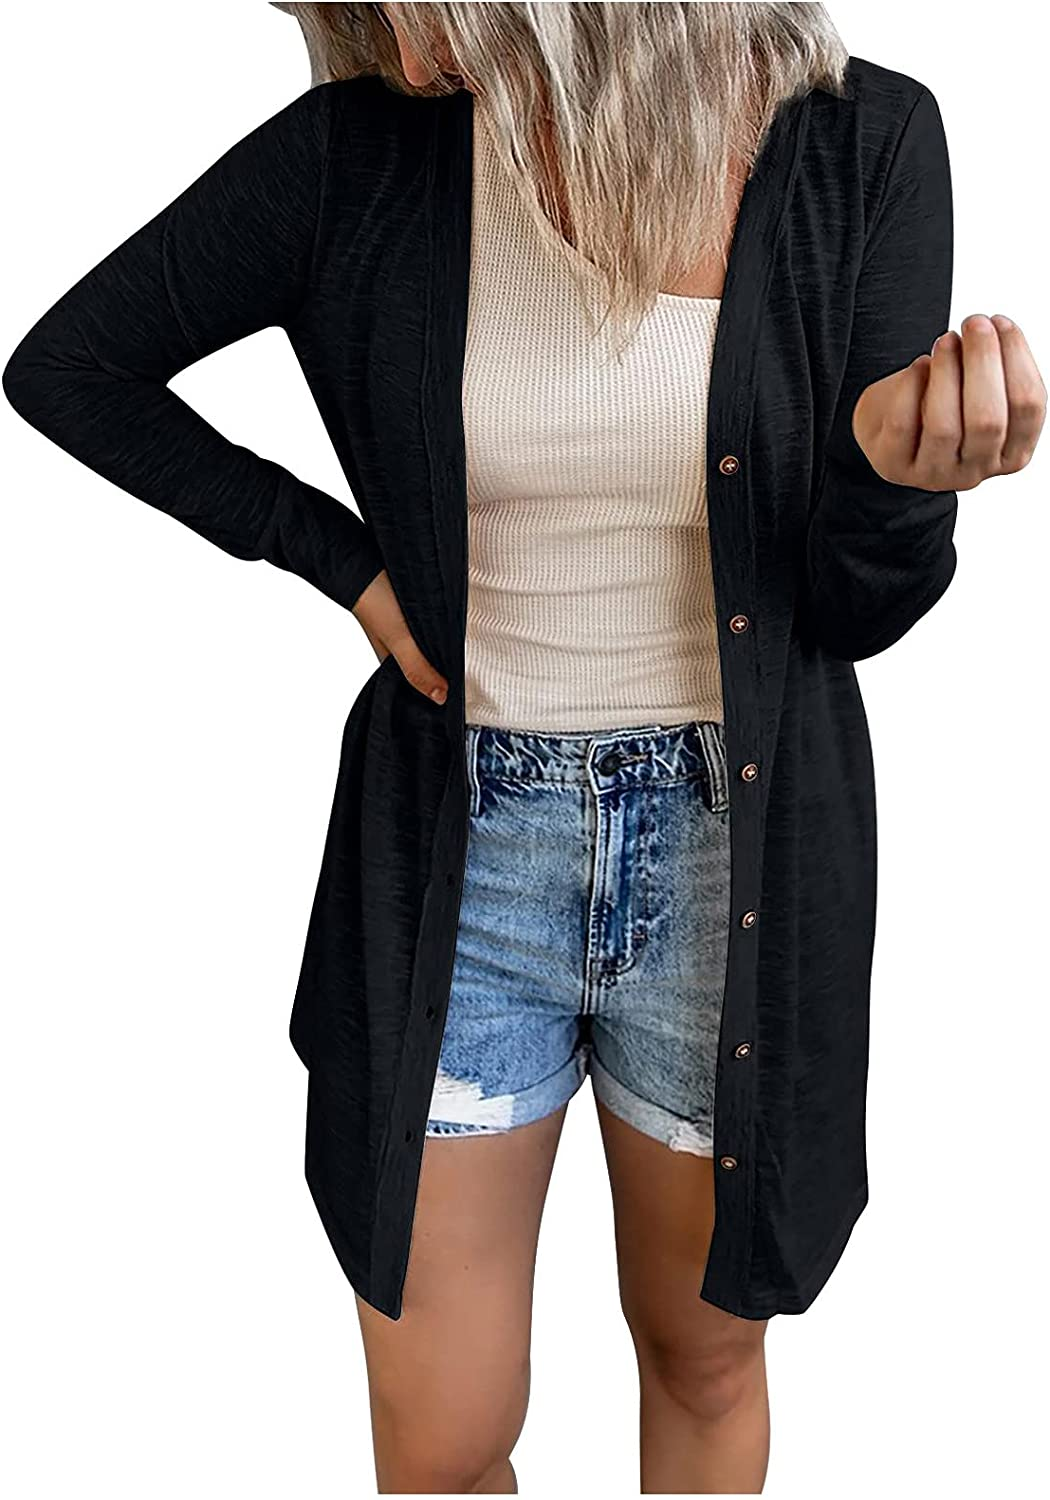 Cardigan for Women Fashion Solid Buttons Cardigan Outerwear Loose Long Sleeve Tunic Tees Autumn Coat